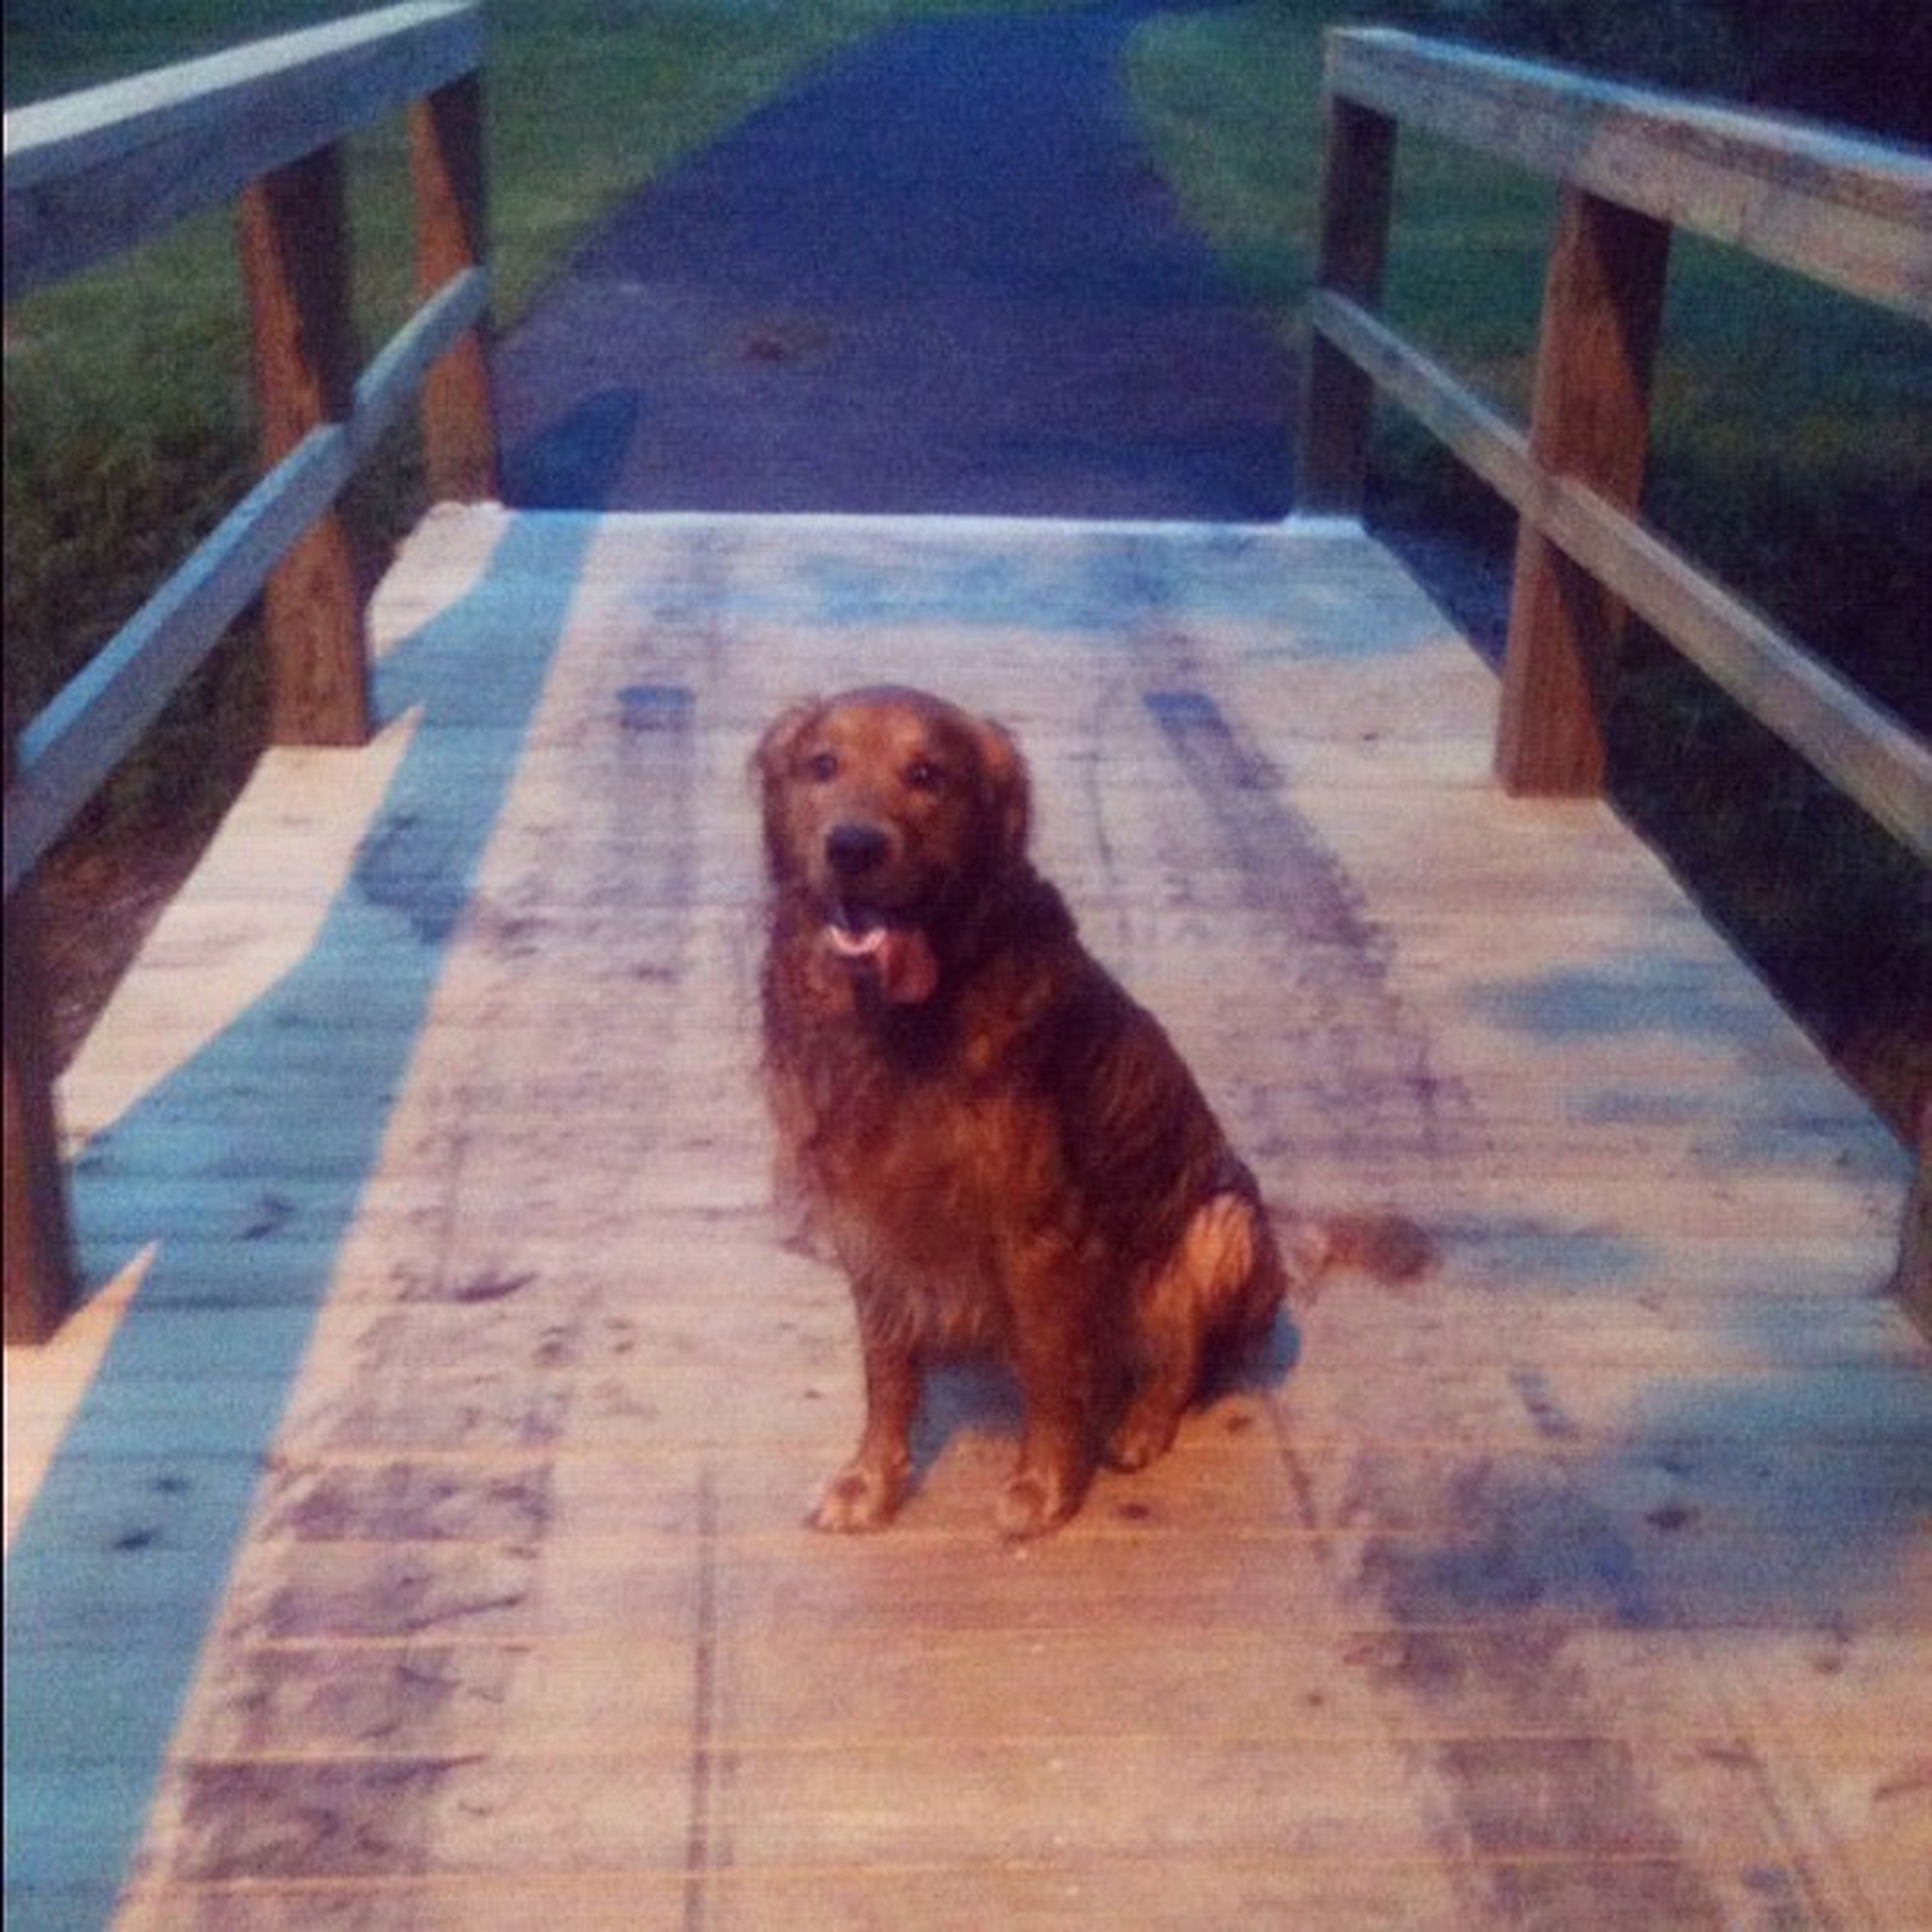 dog, pets, domestic animals, animal themes, mammal, one animal, high angle view, wood - material, full length, railing, steps, sitting, boardwalk, looking at camera, sunlight, wooden, portrait, no people, relaxation, day